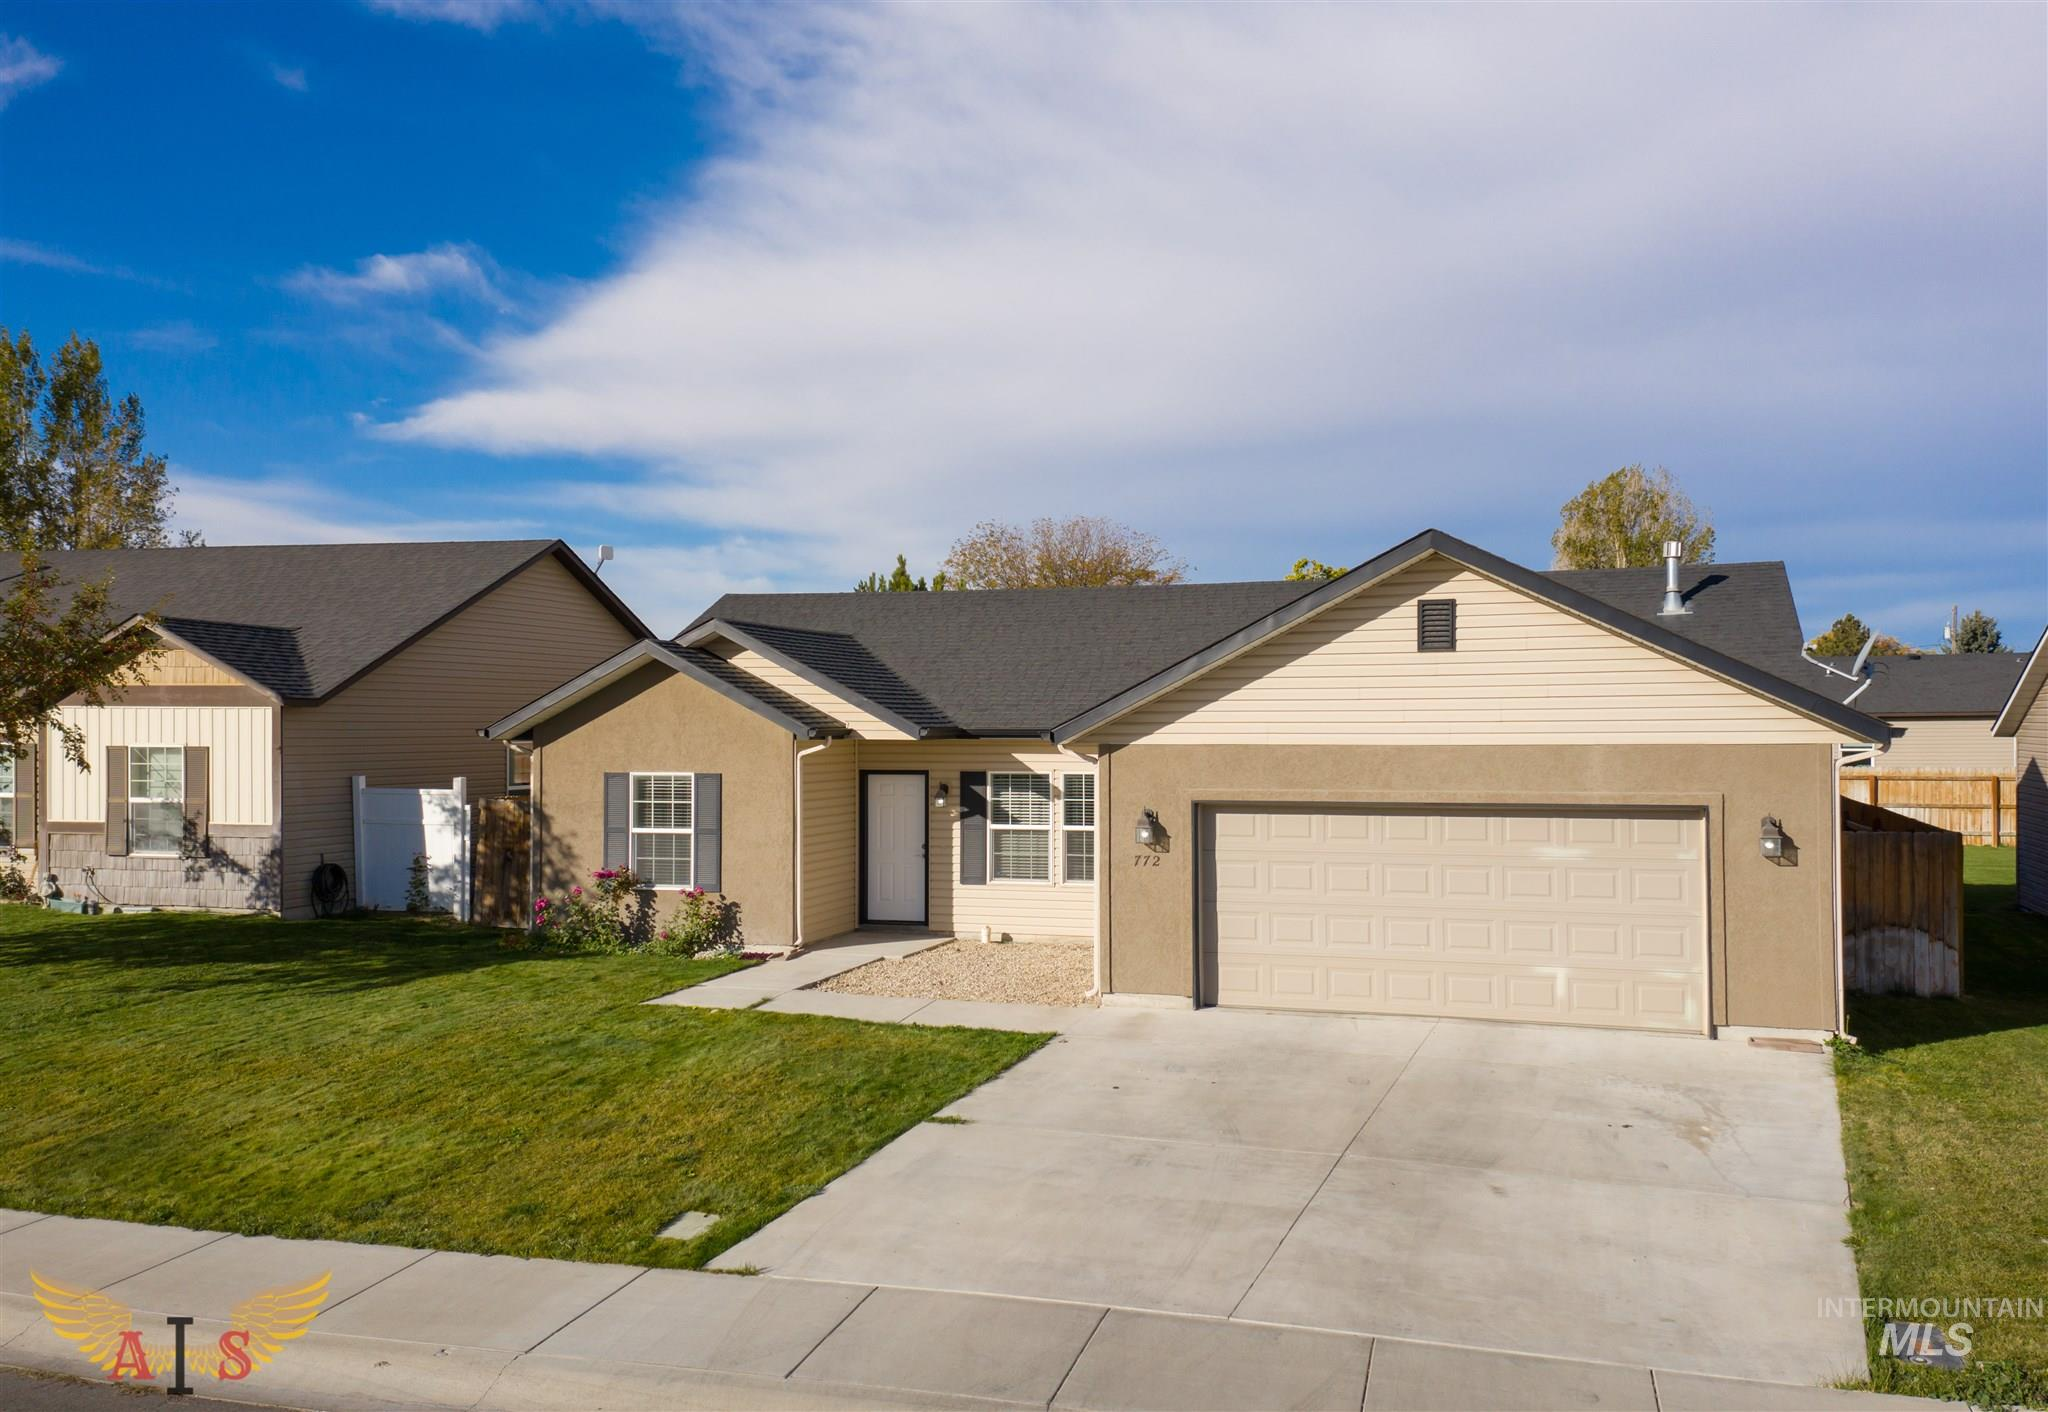 772 Birchwood Rd., Twin Falls, Idaho 83301, 3 Bedrooms, 2 Bathrooms, Residential For Sale, Price $217,900, 98784665